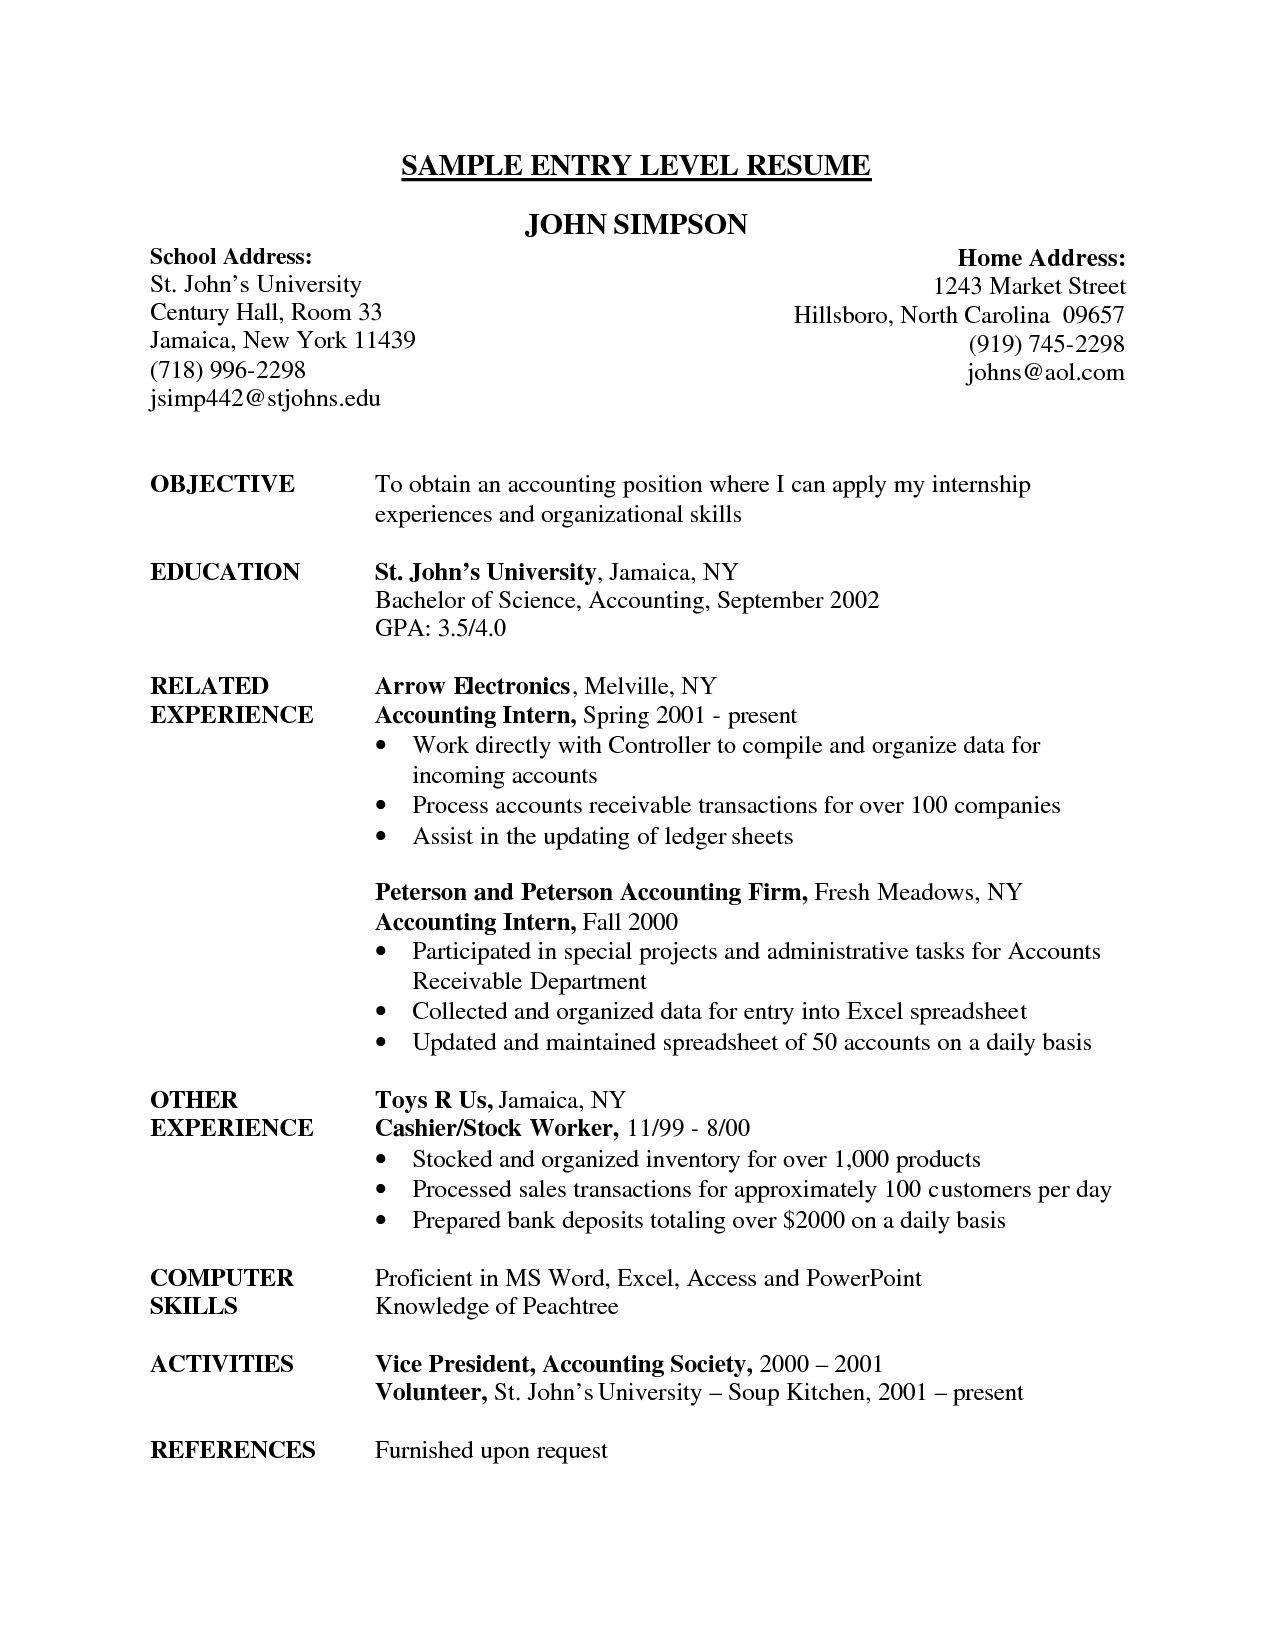 Sample Entry Level Resume Entry Level Resume Example Entry Level Job Resume Examples